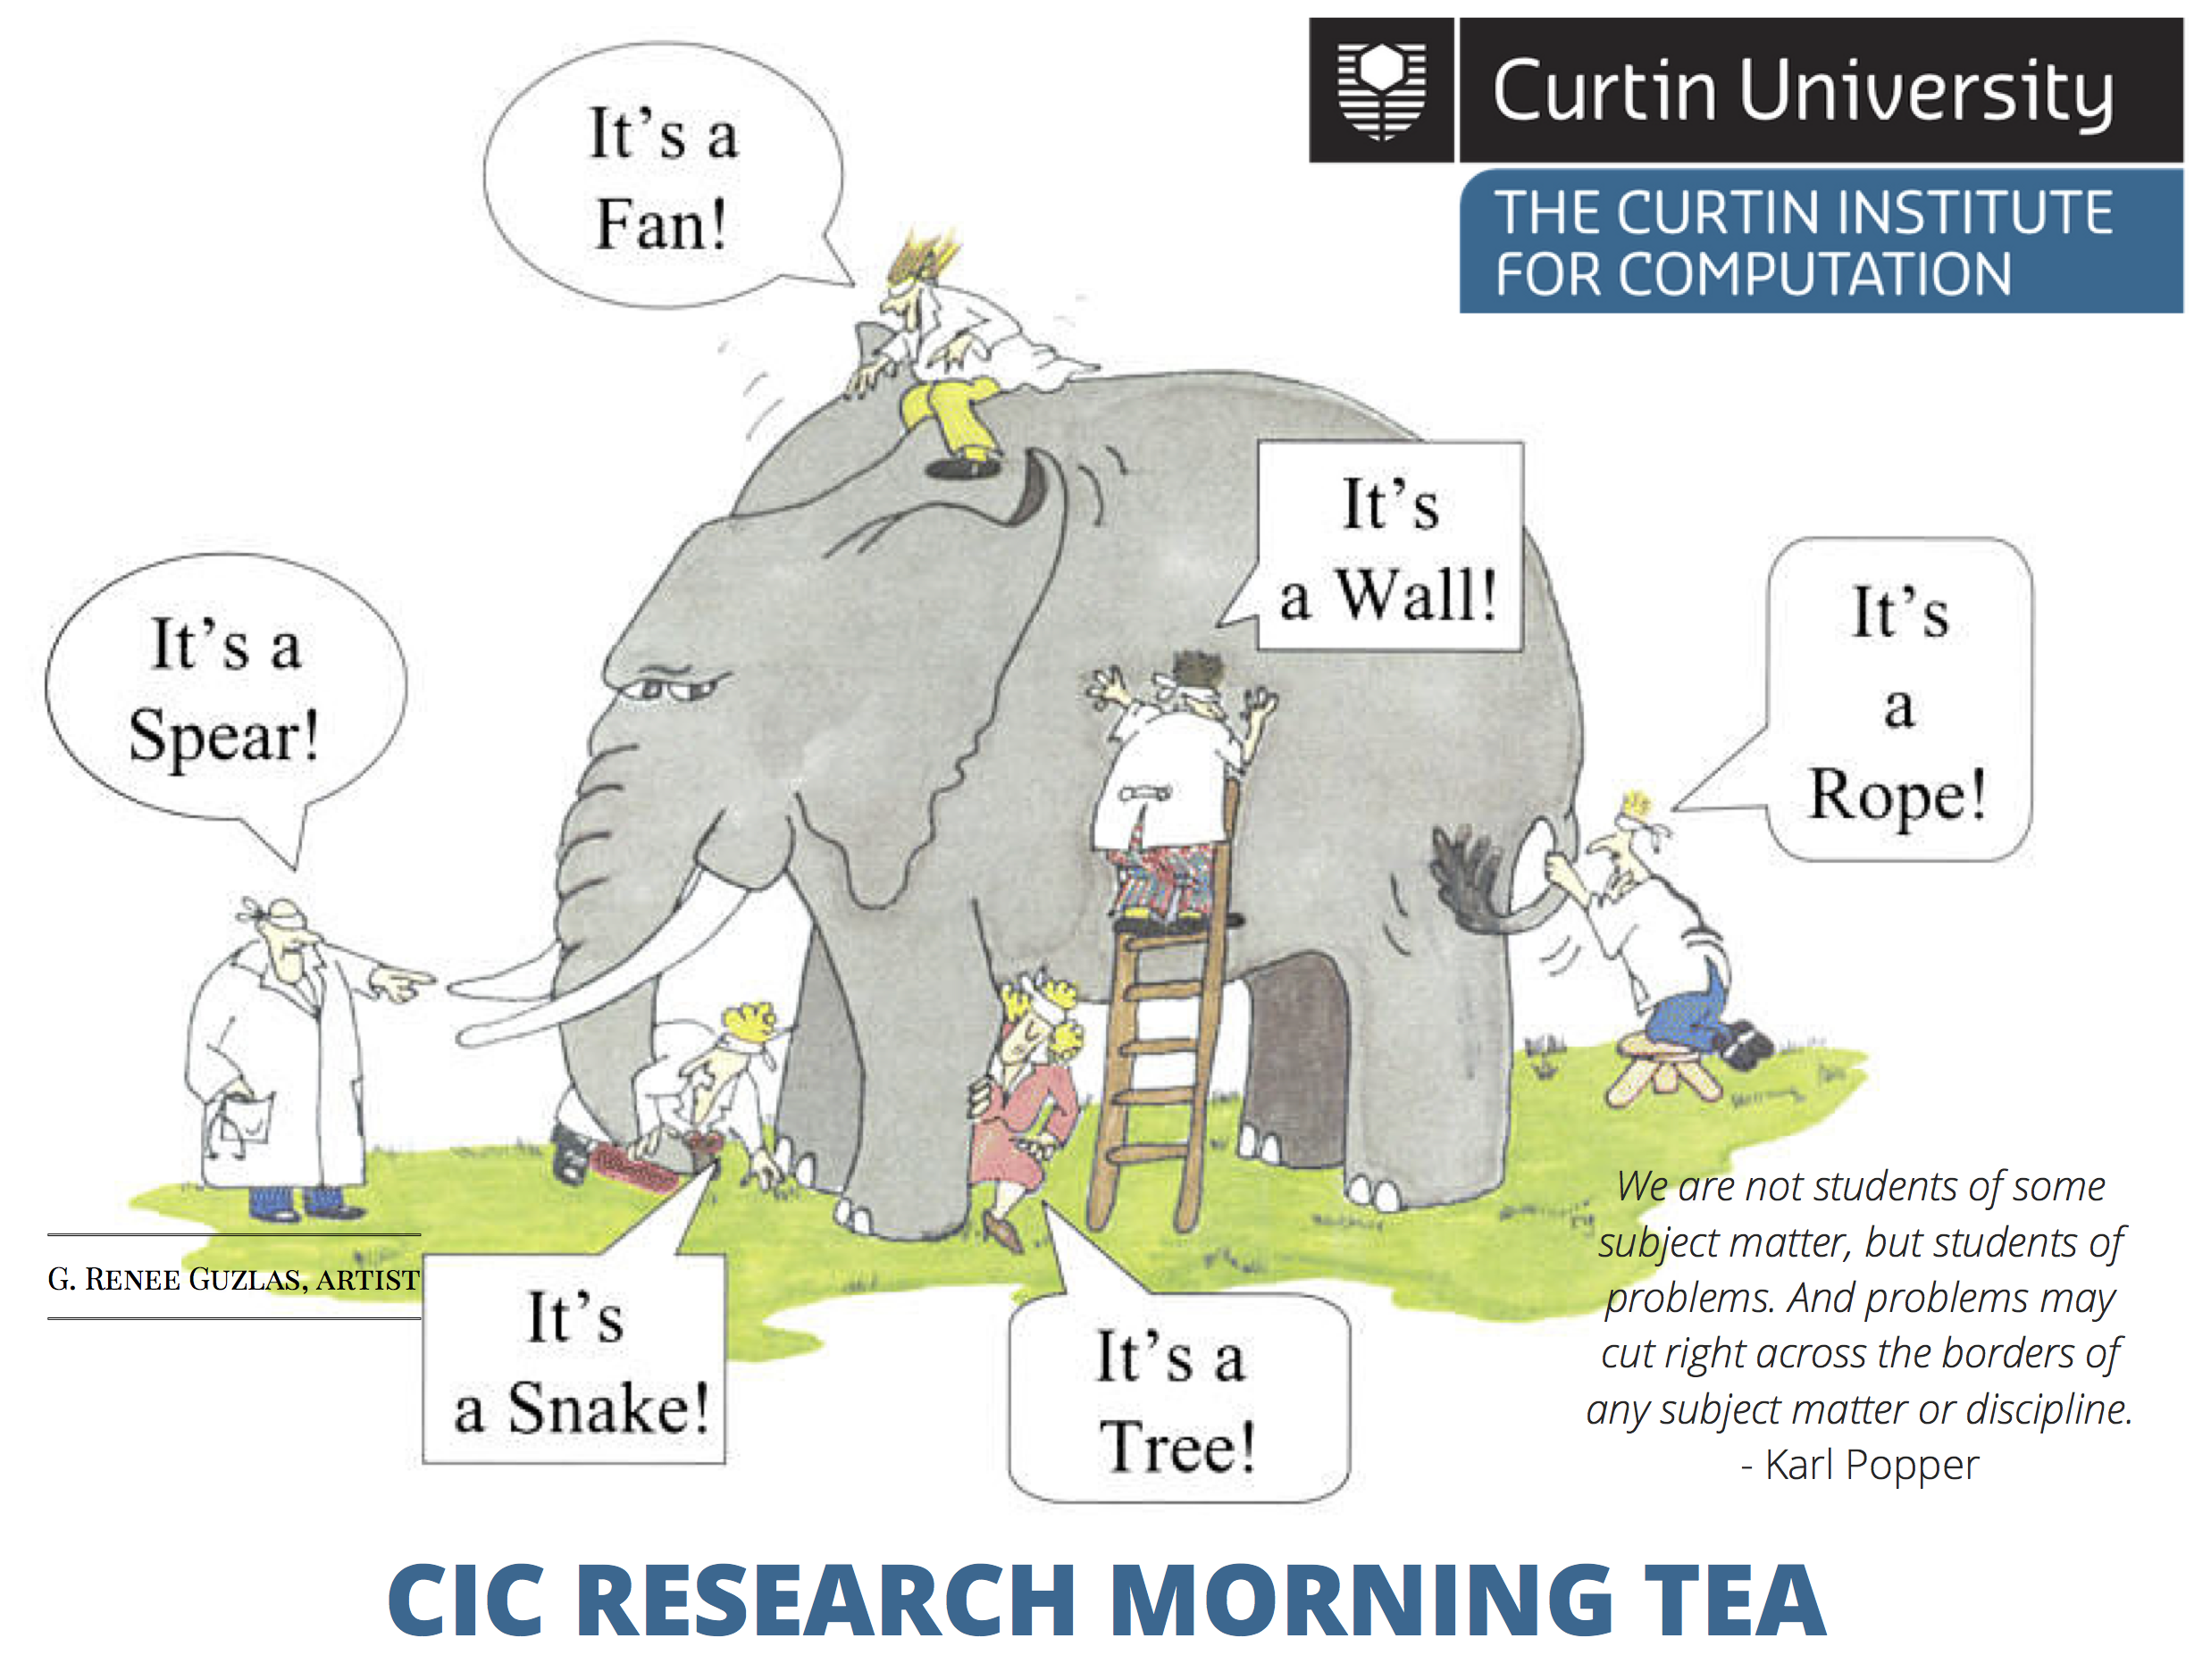 CIC Research Morning Tea